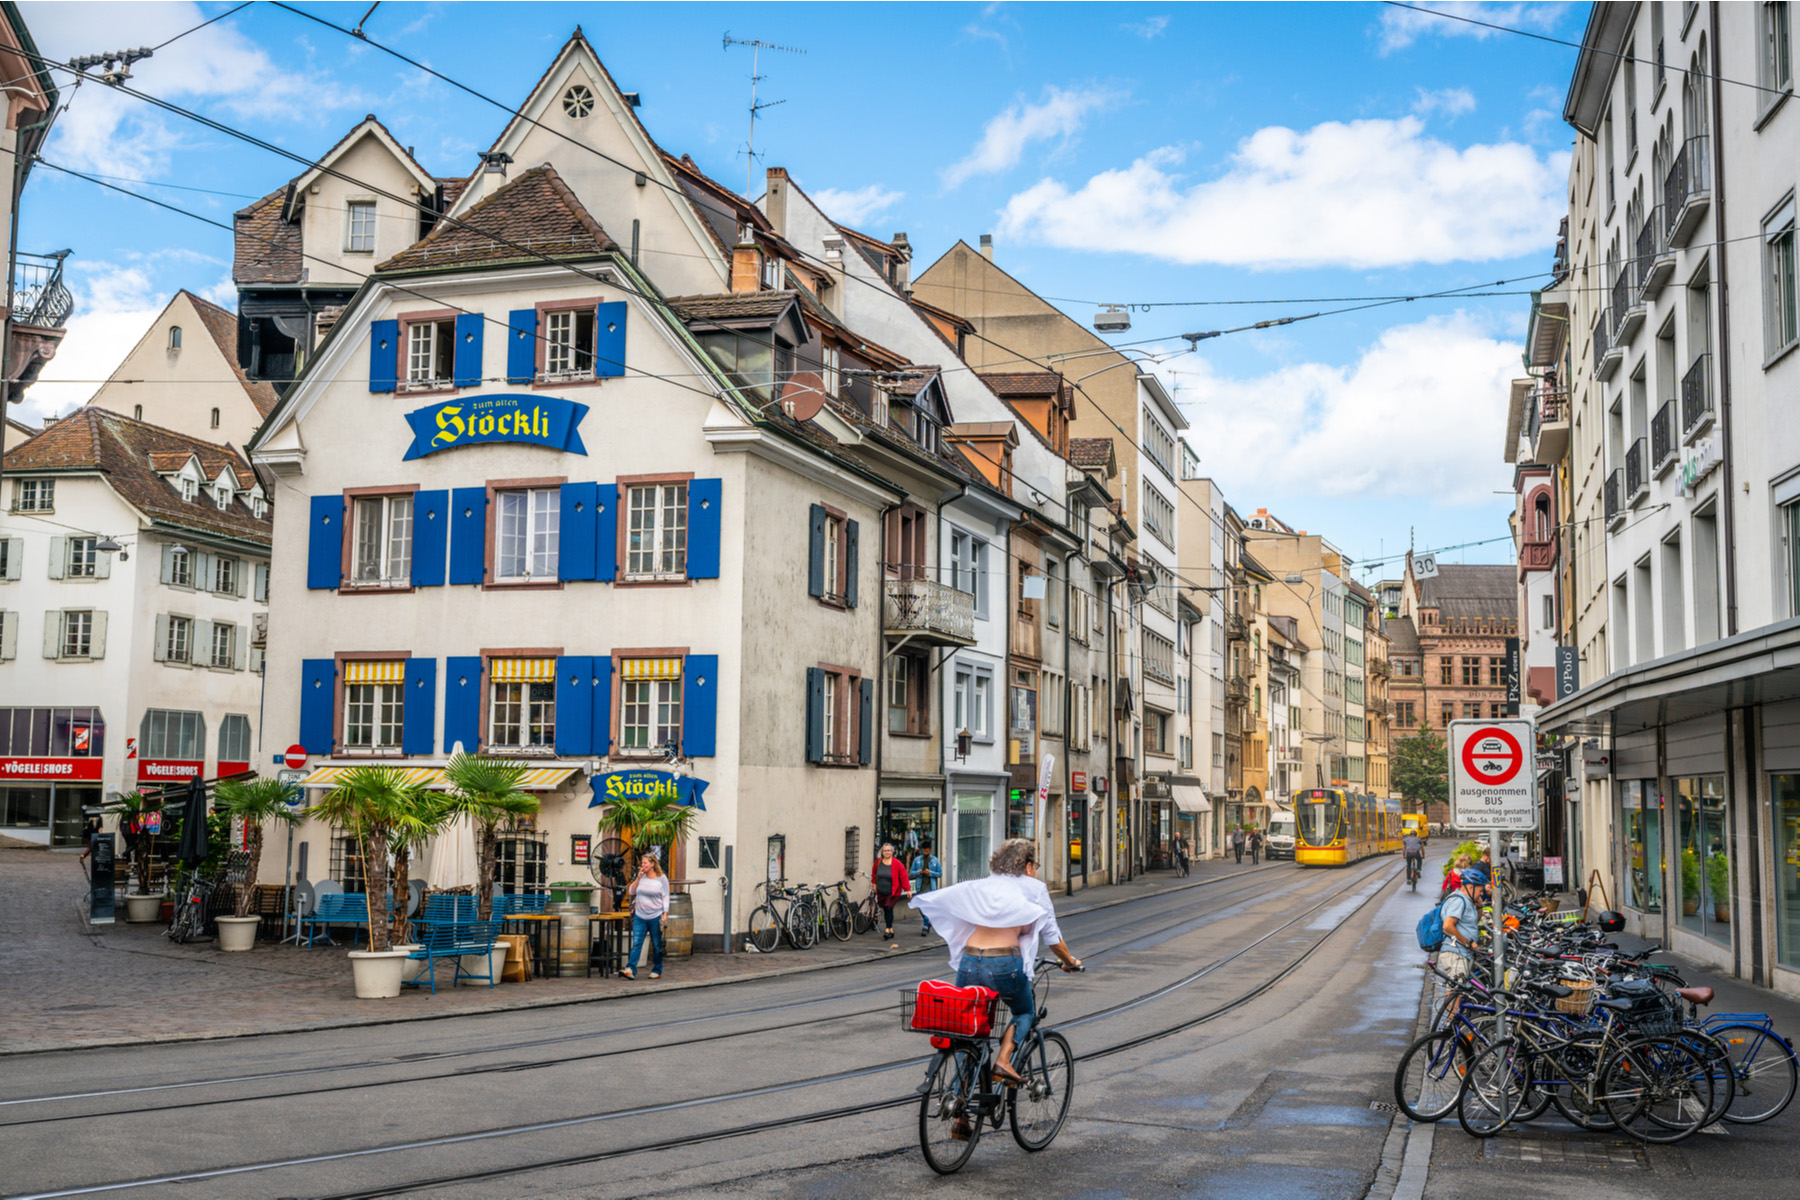 A street in the city center of Basel